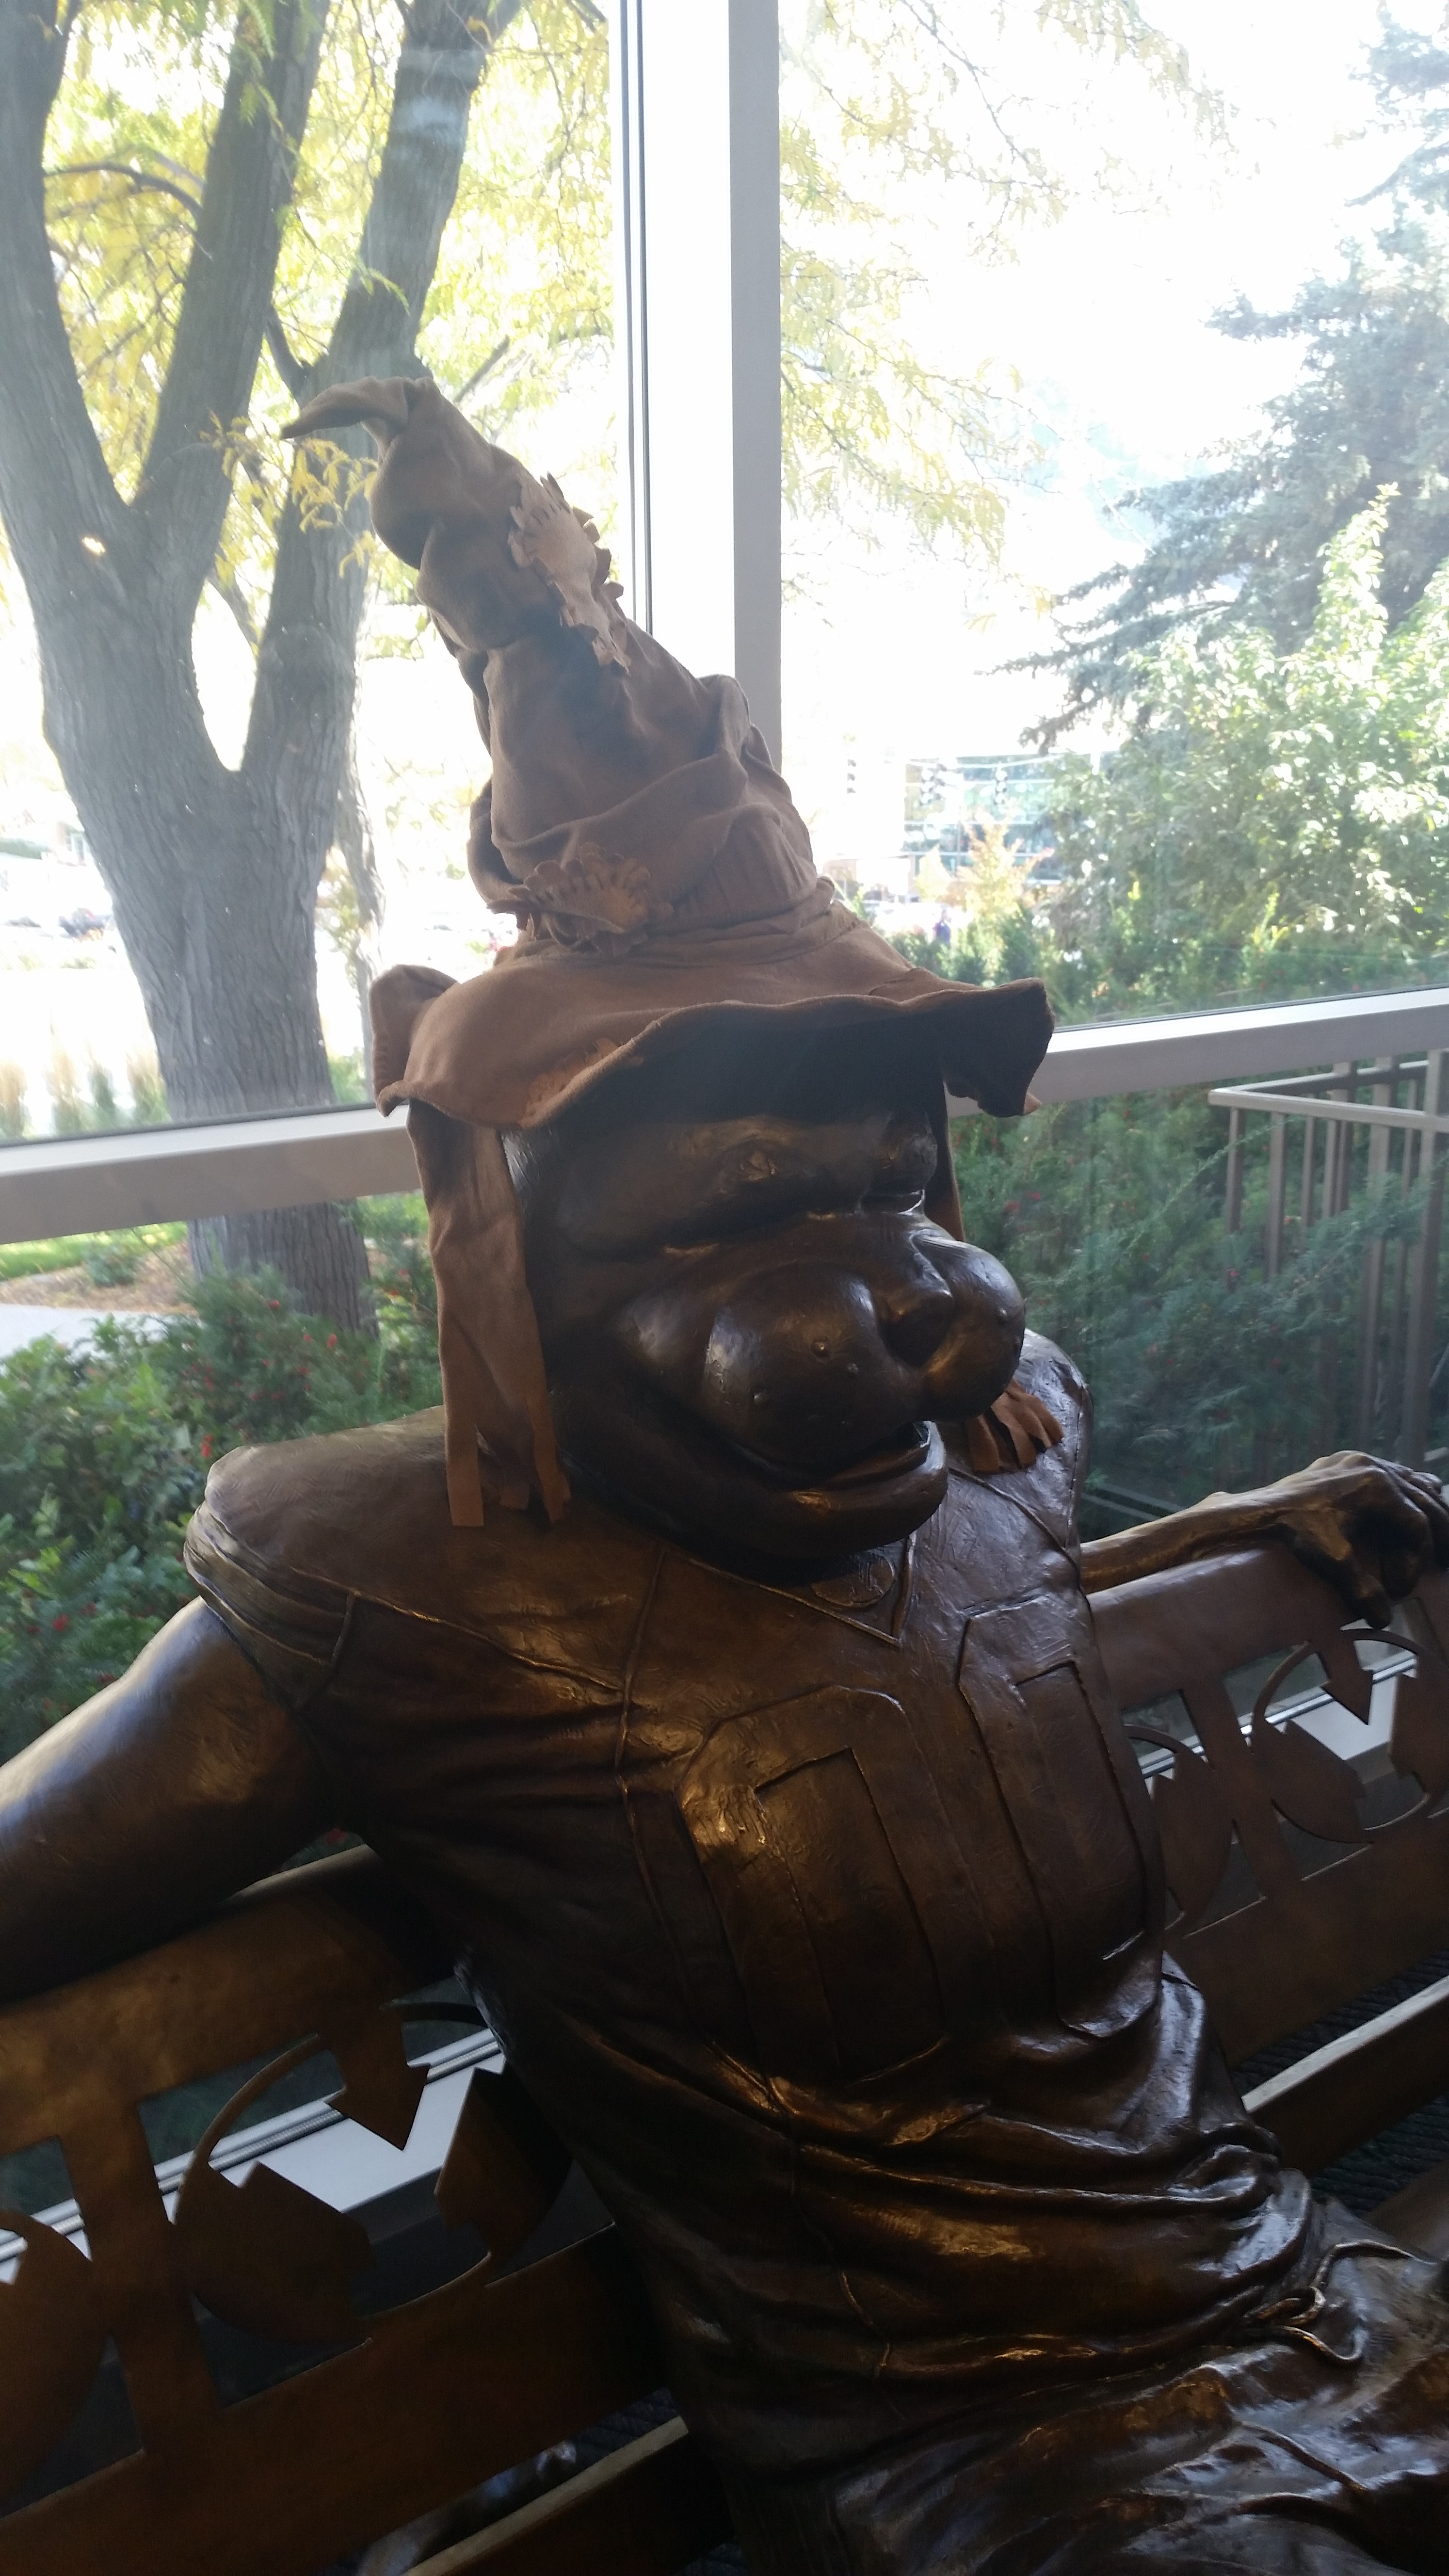 Cosmo the Cougar dons the Hogwarts Sorting Hat for Harry Potter Week at The Wall.